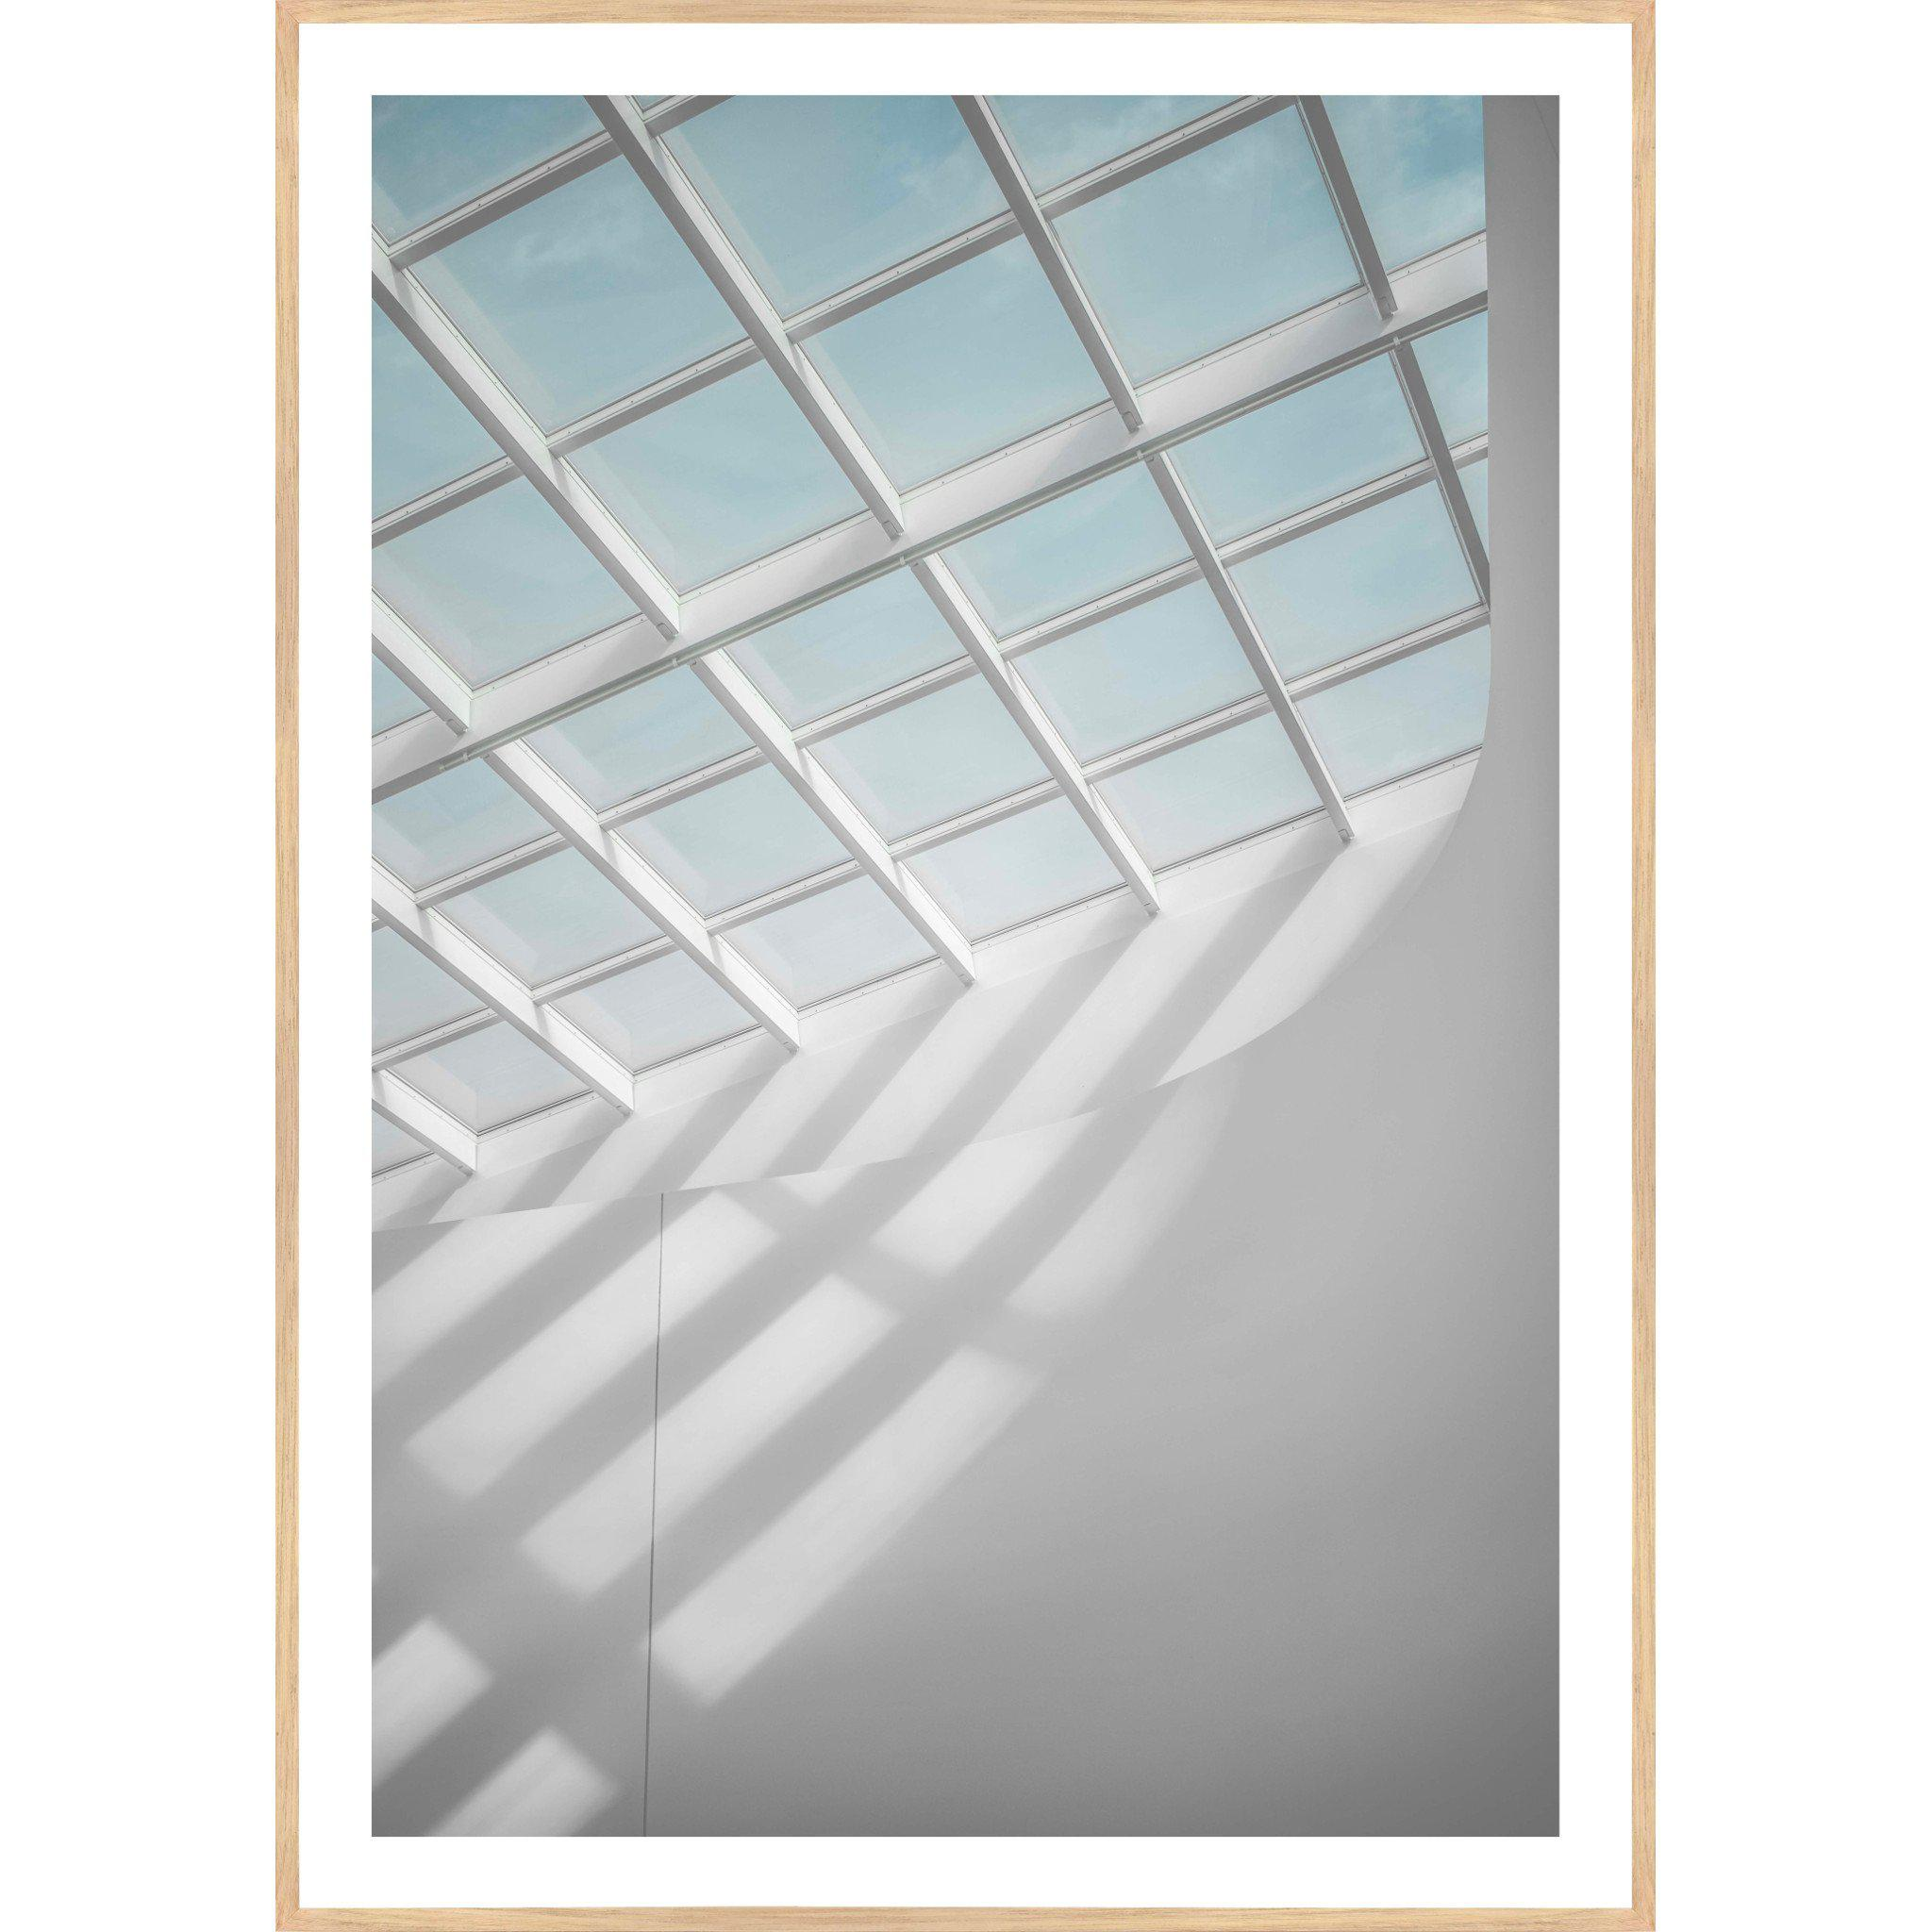 Glass Ceilings - Art Print, Portrait